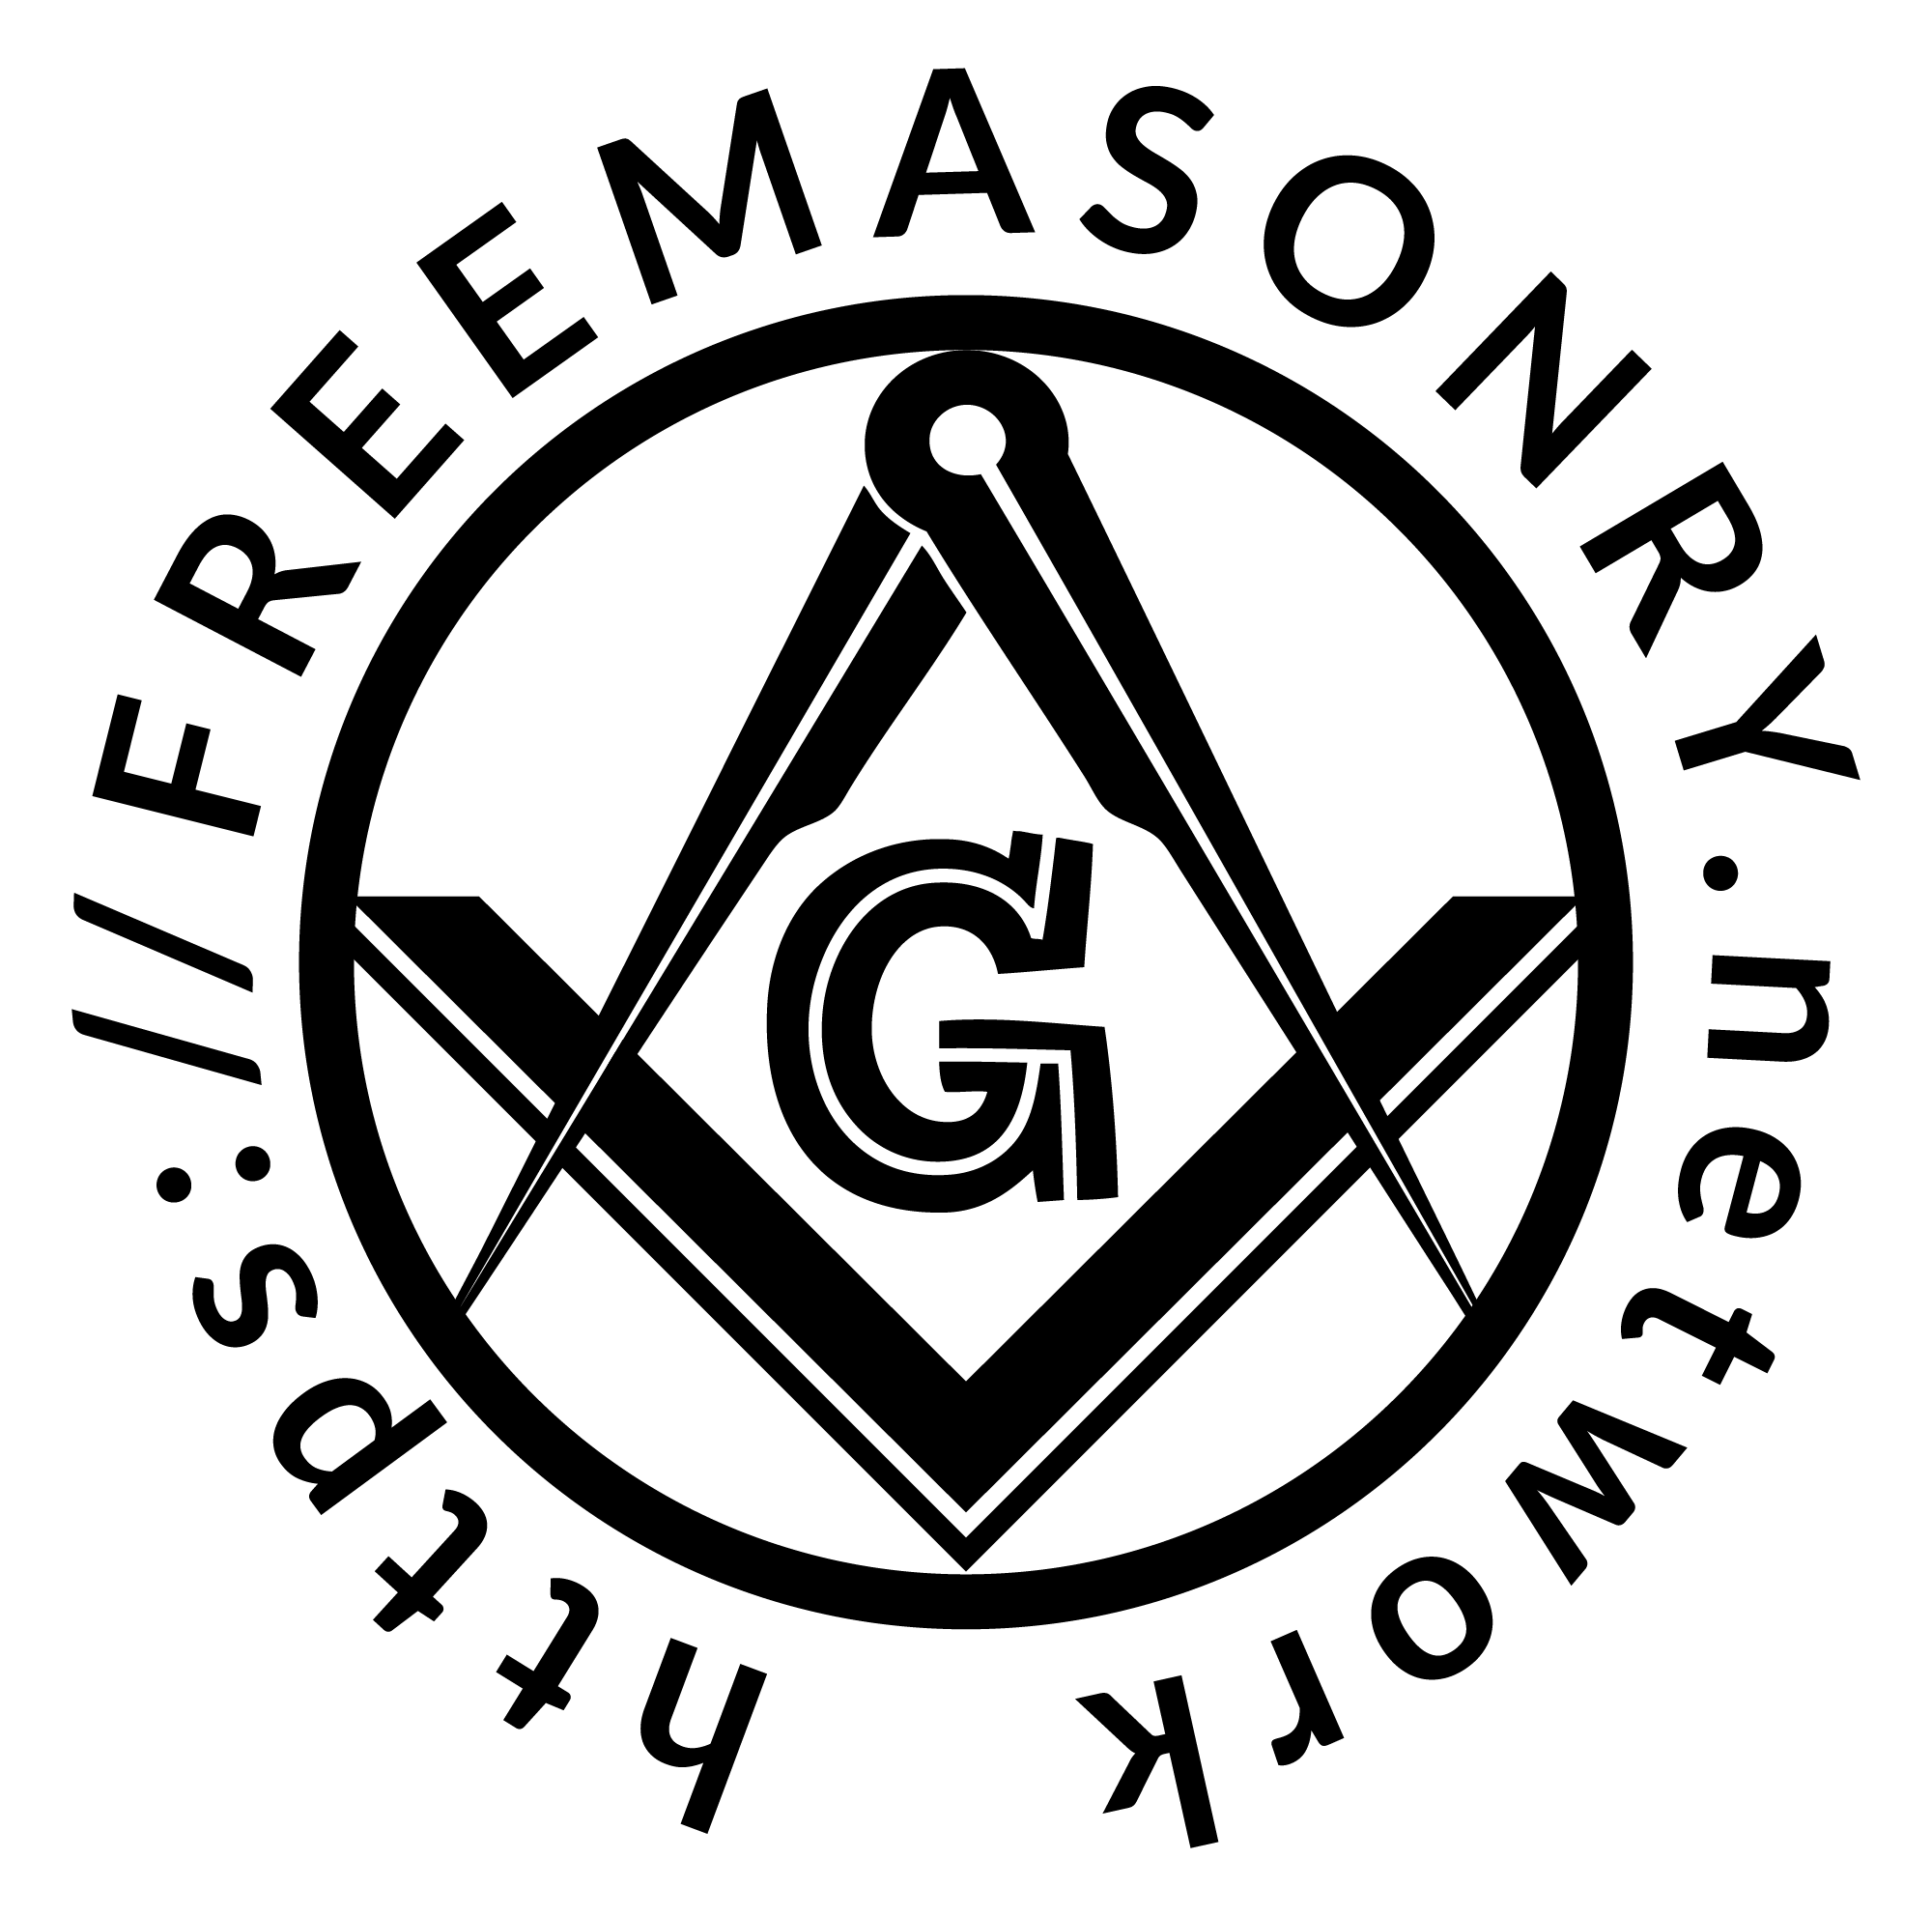 FREEMASONRY IN AFRICA, African Freemasonry